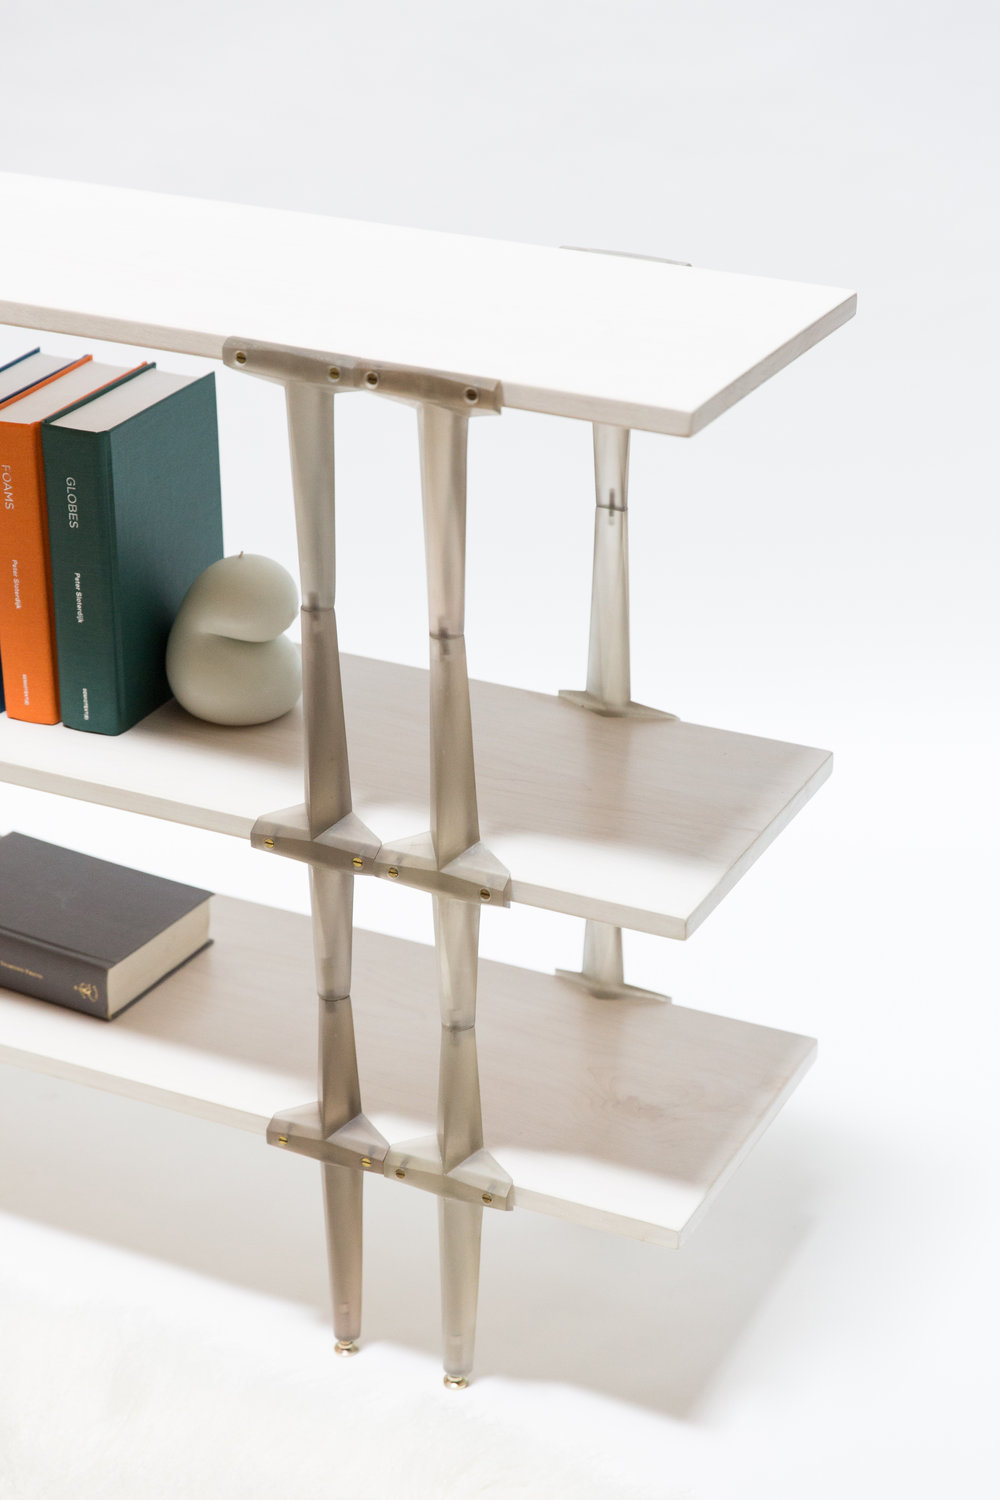 TYM001_Tee Column Bookshelves_04.jpg